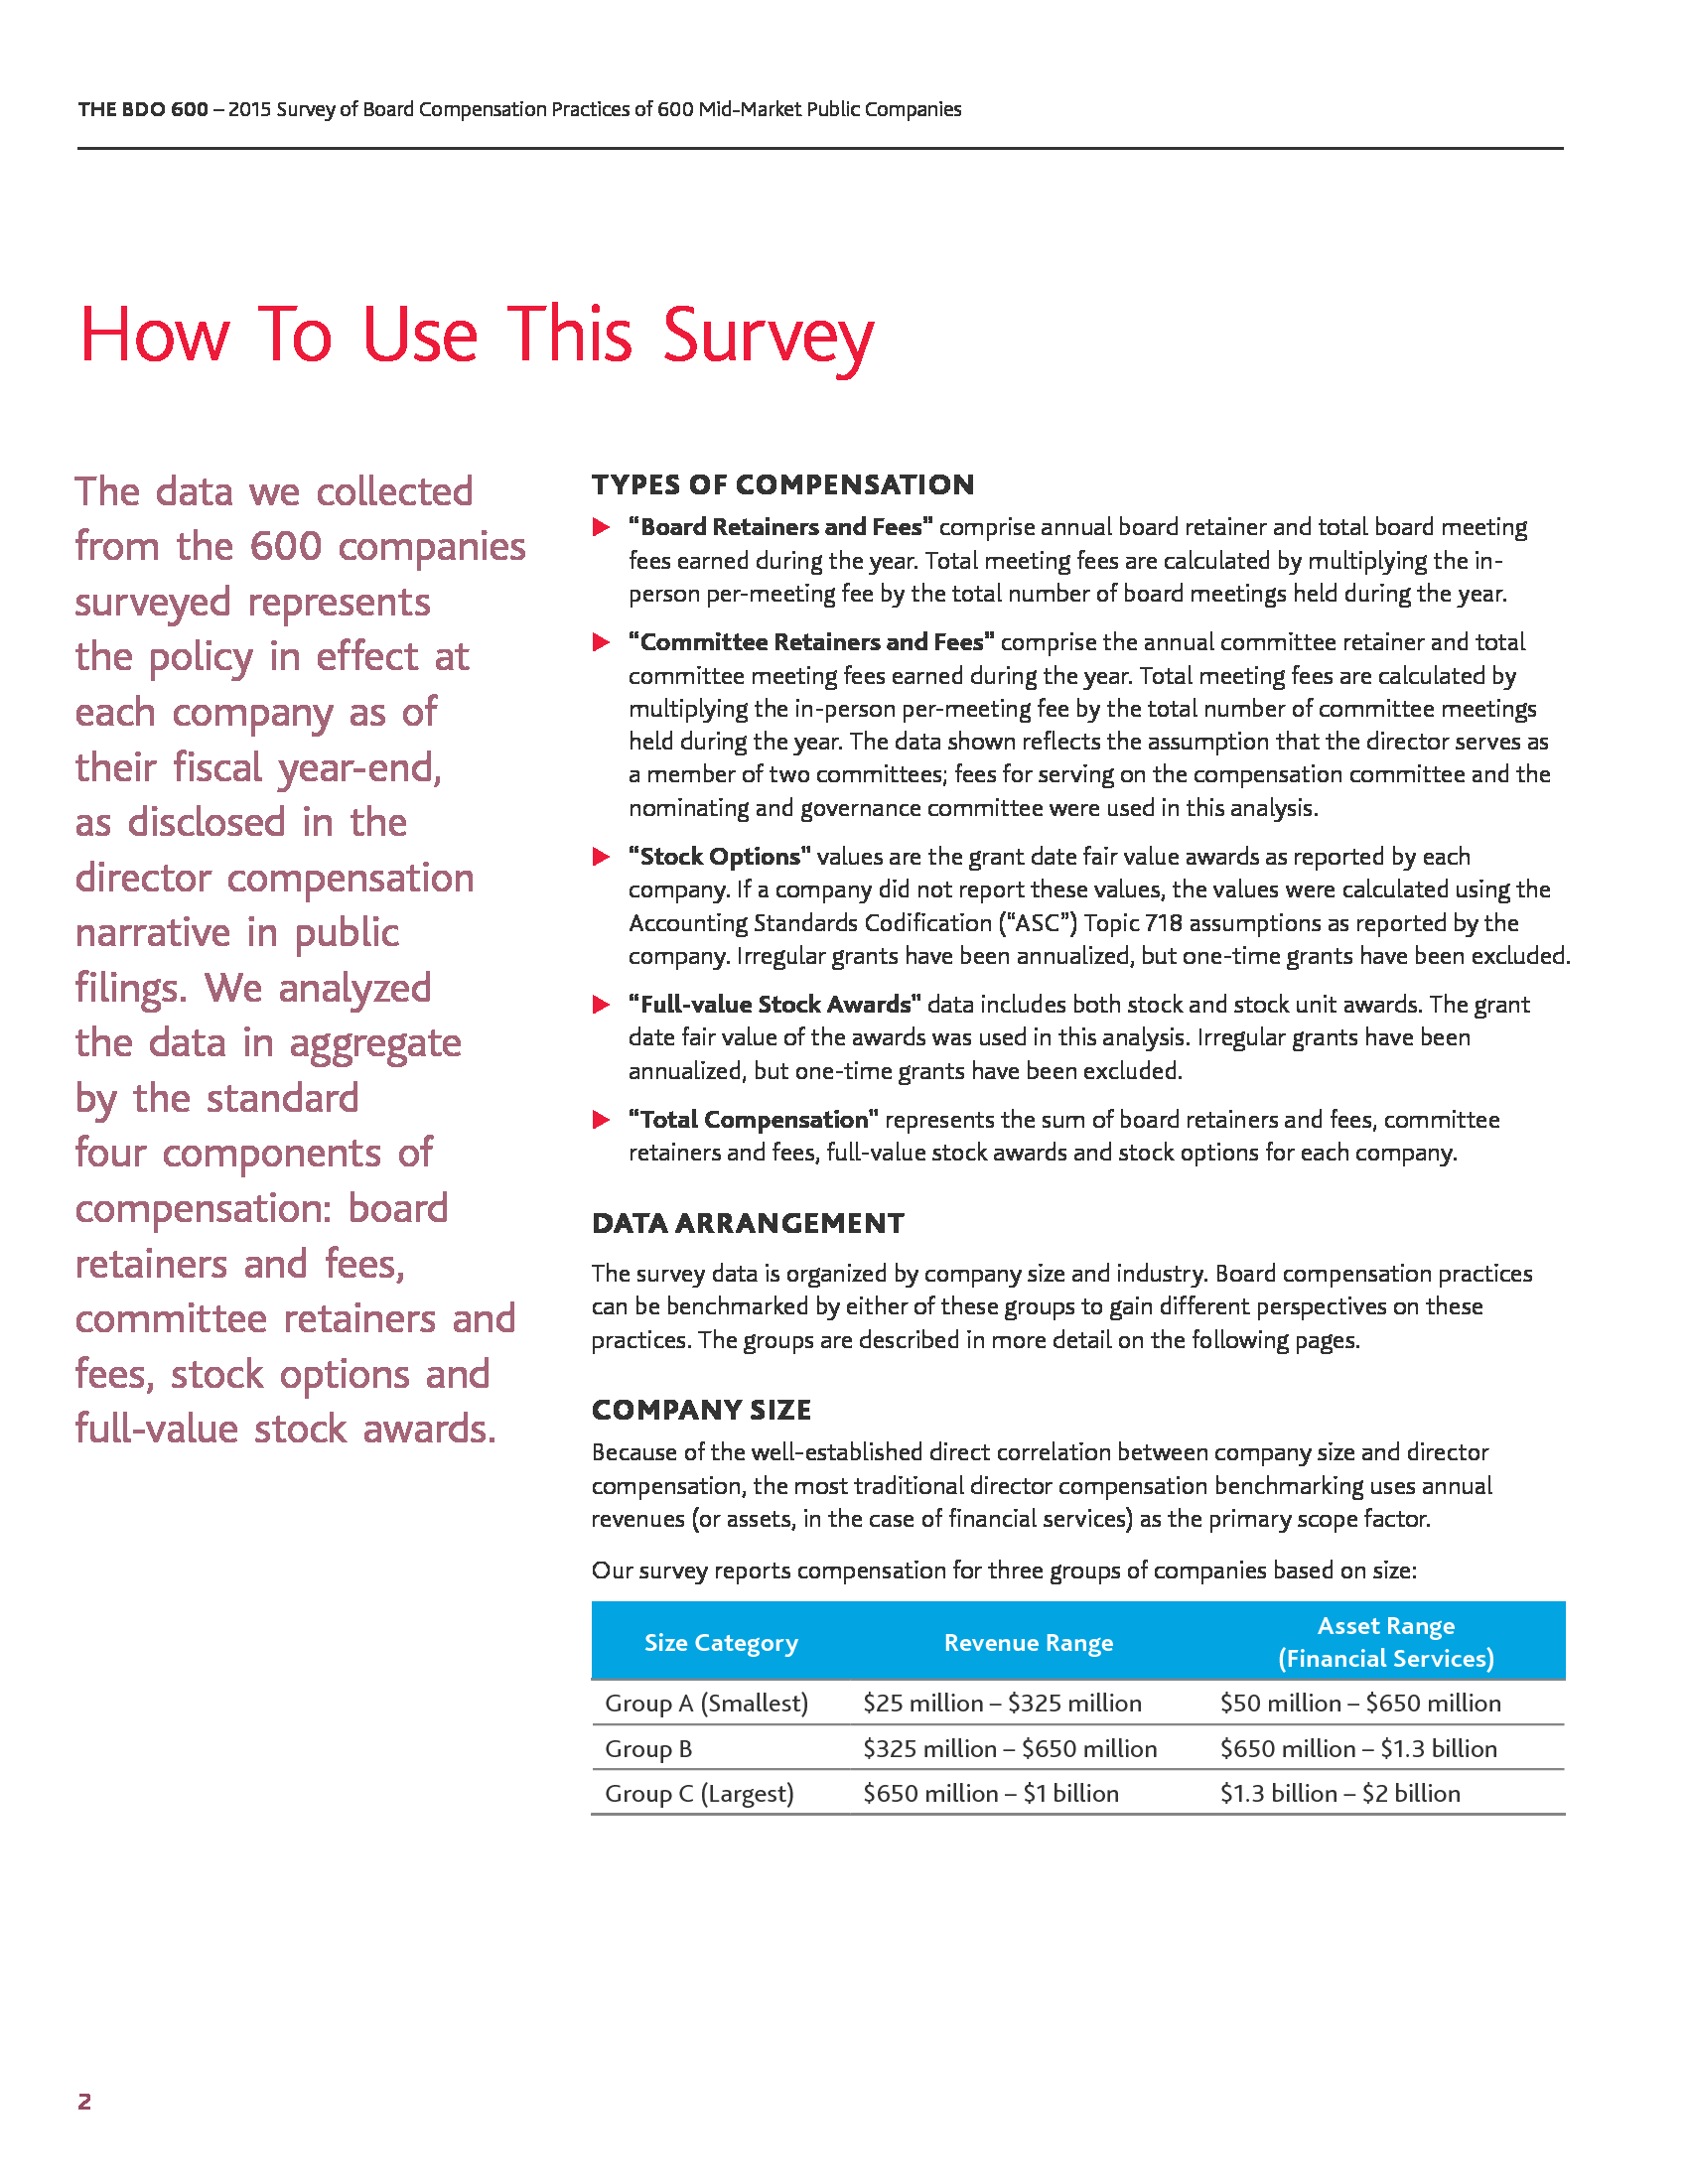 Advisorselect - The BDO 600 - The BDO 600 survey details